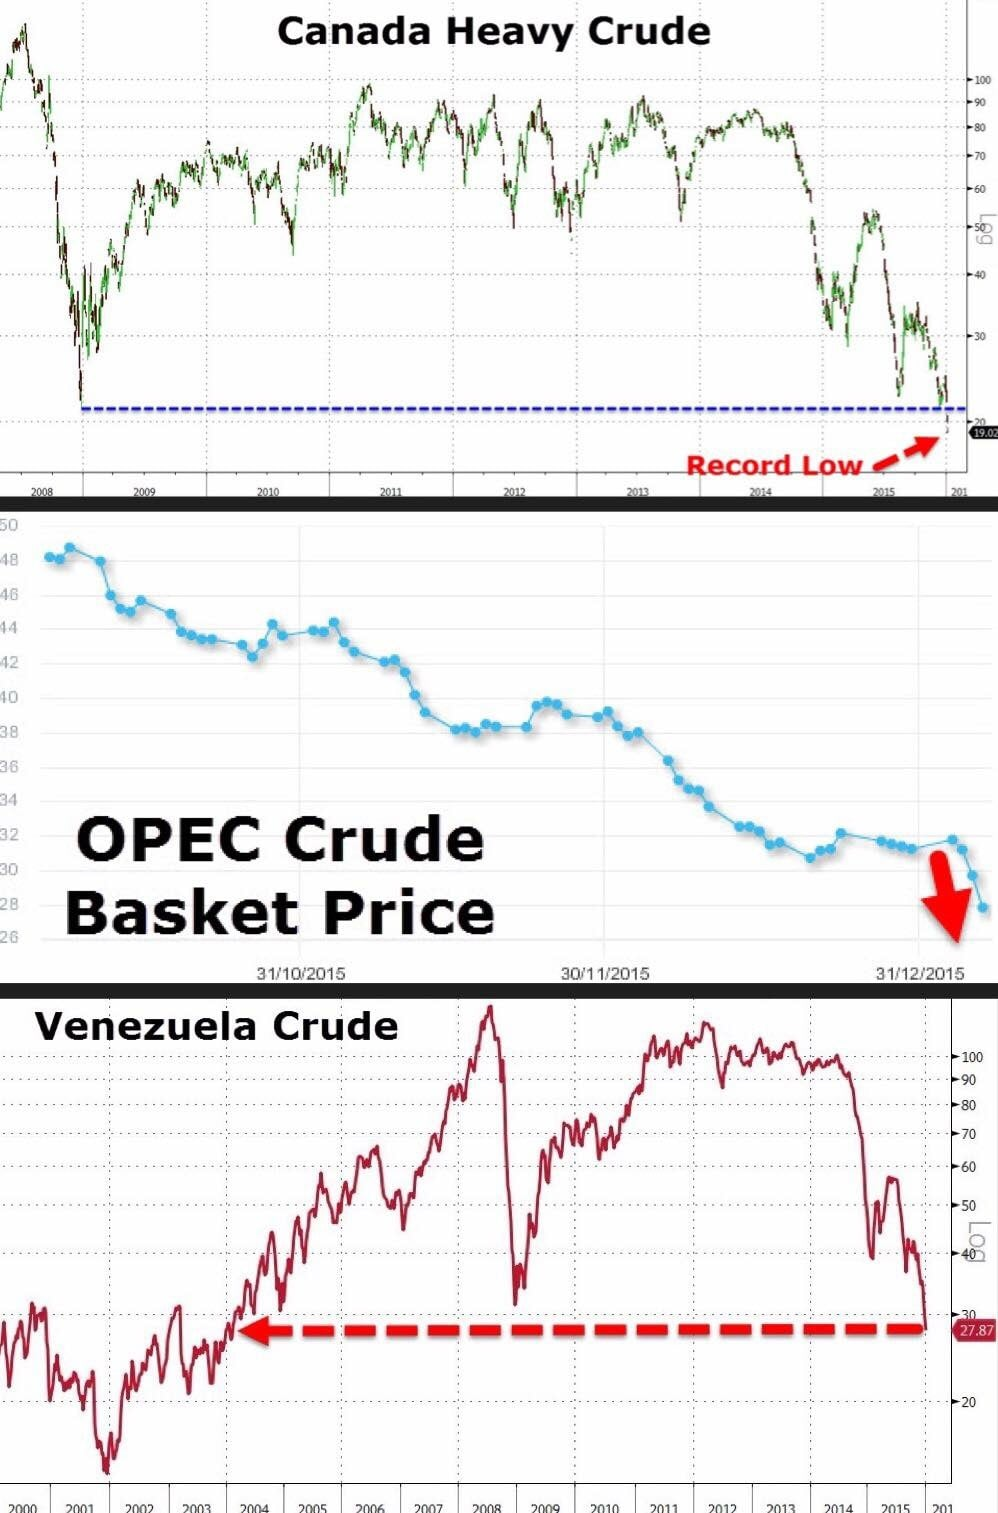 """""""It's not just WTI and Brent crude that are crashing through their 2009 lows. Crude #oil prices all across the world, chiefly amongst #OPEC, #Canada, and Venezuela have either set record lows or are testing them.""""   Business Of Finance on Facebook, 9 January 2016"""